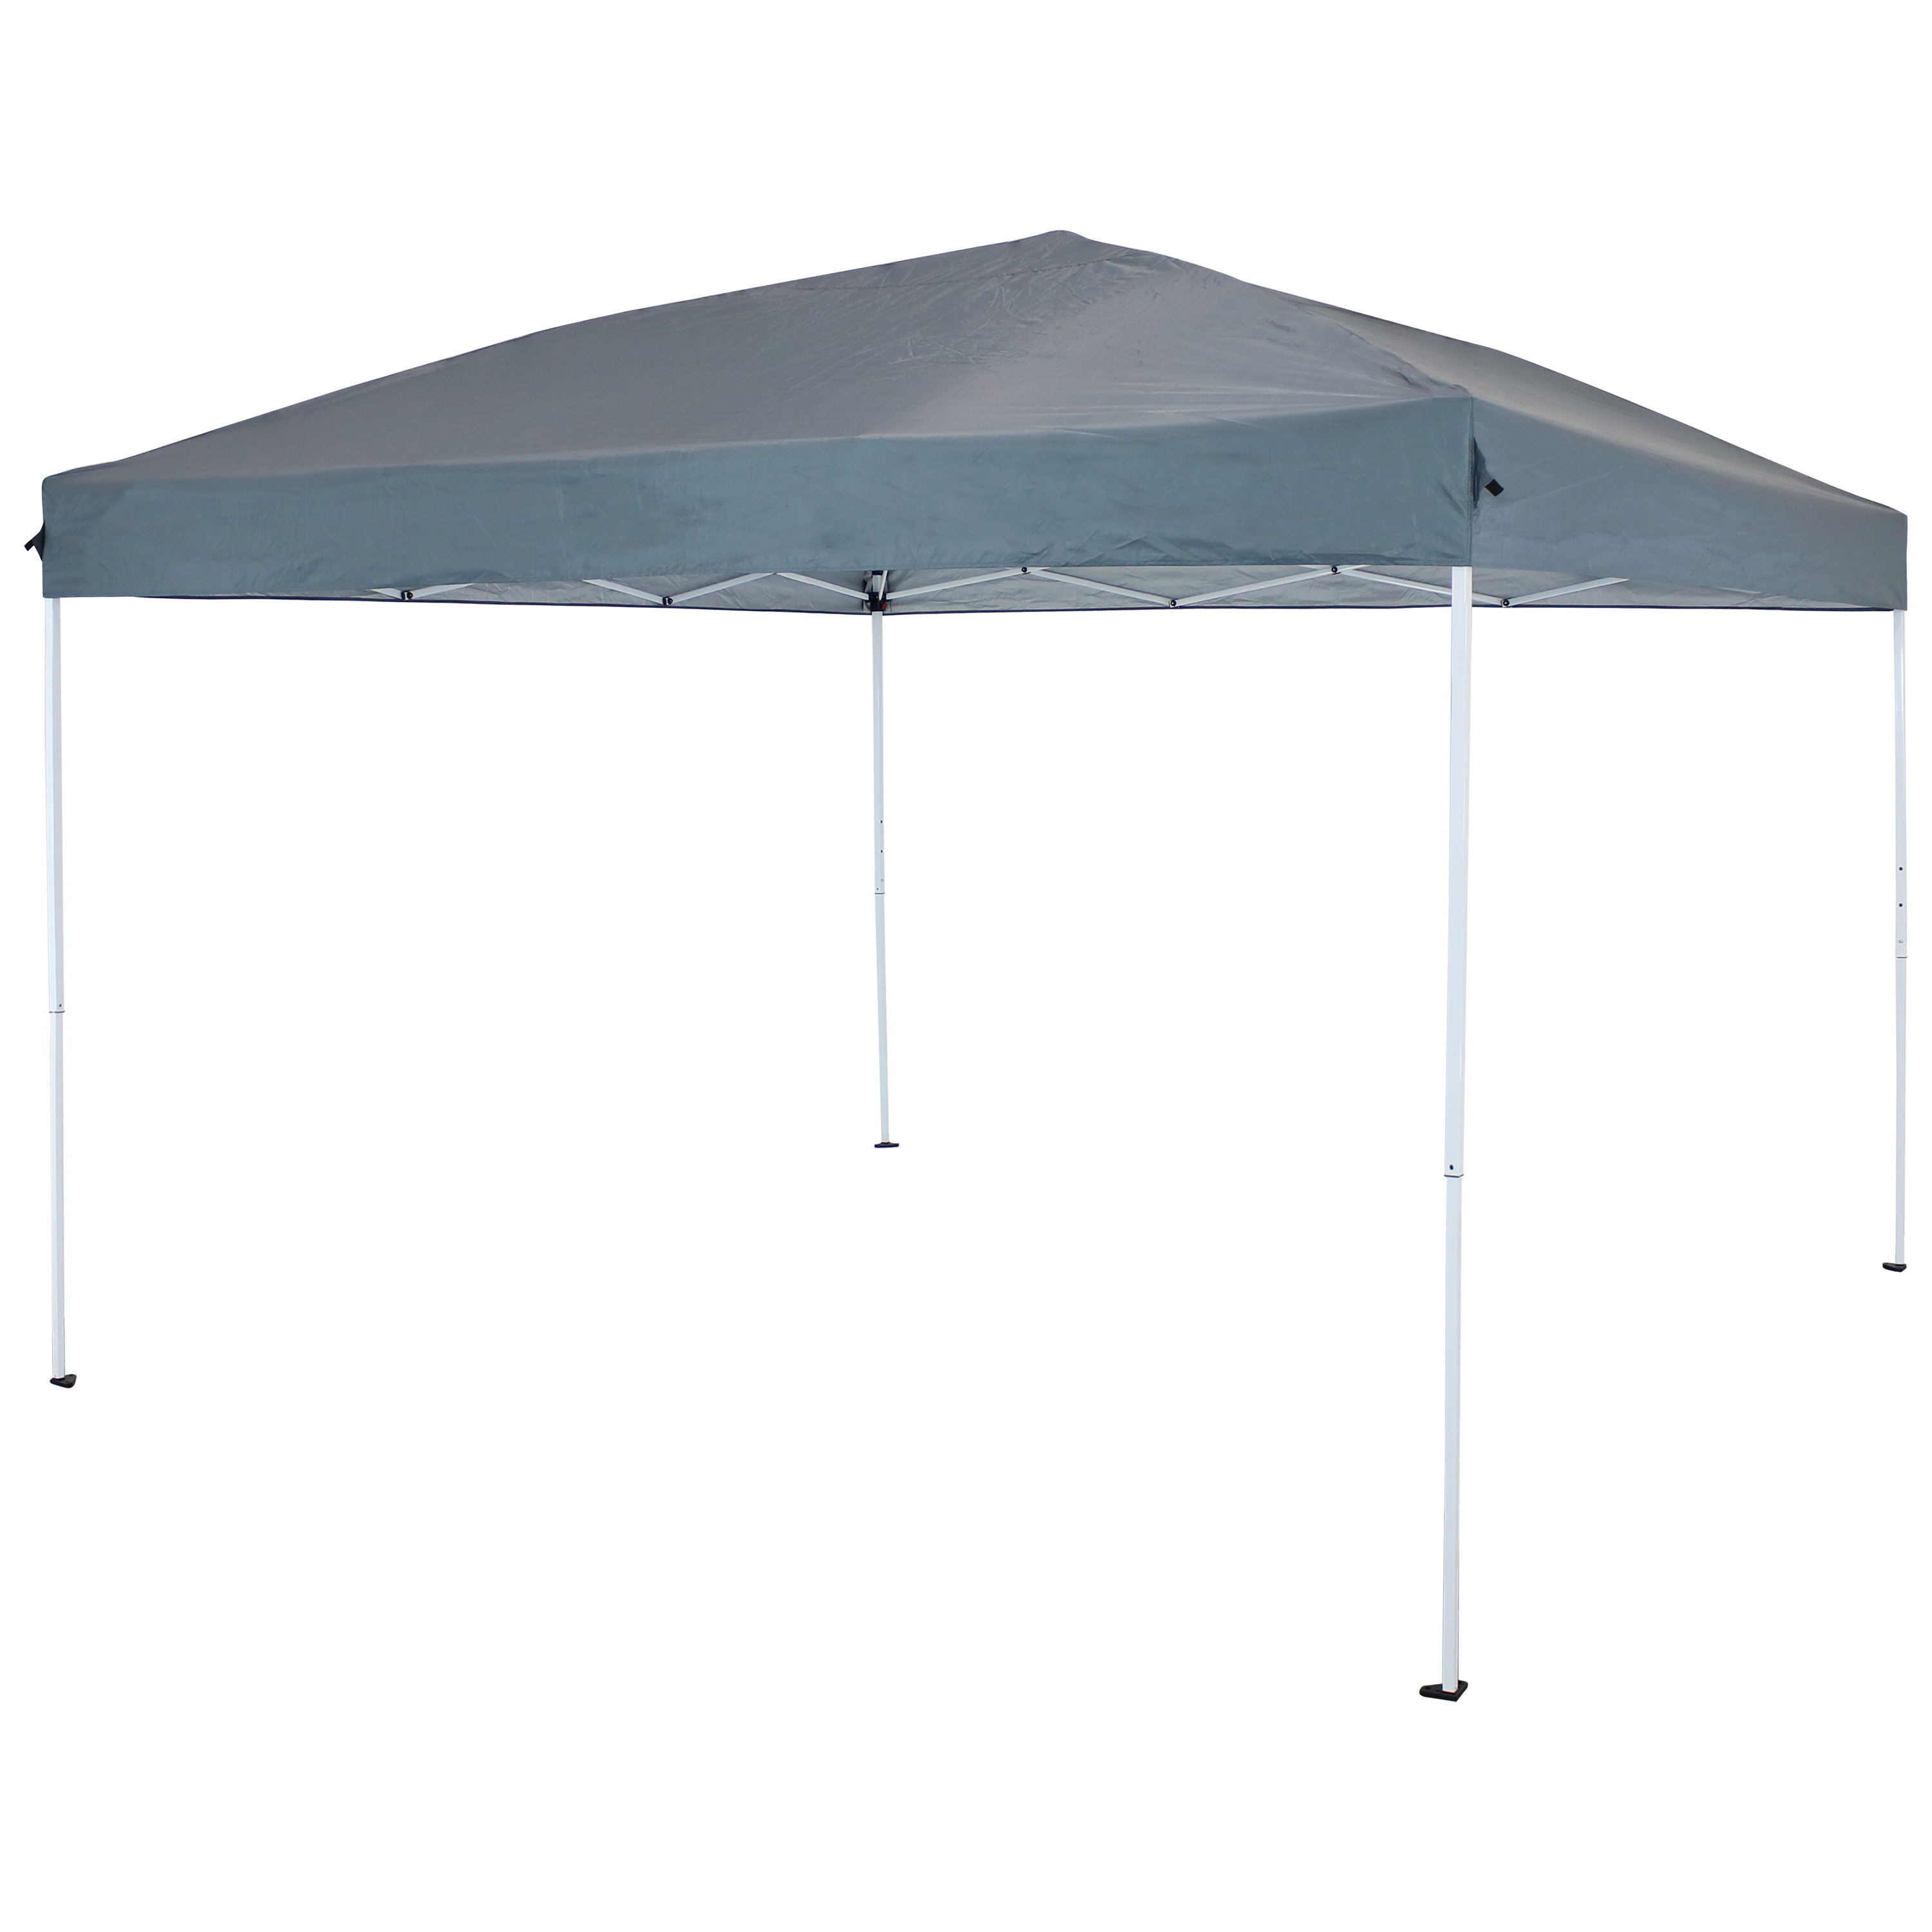 12 x 12 Foot Quick Up Steel Frame Canopy with Carrying Bag Slate